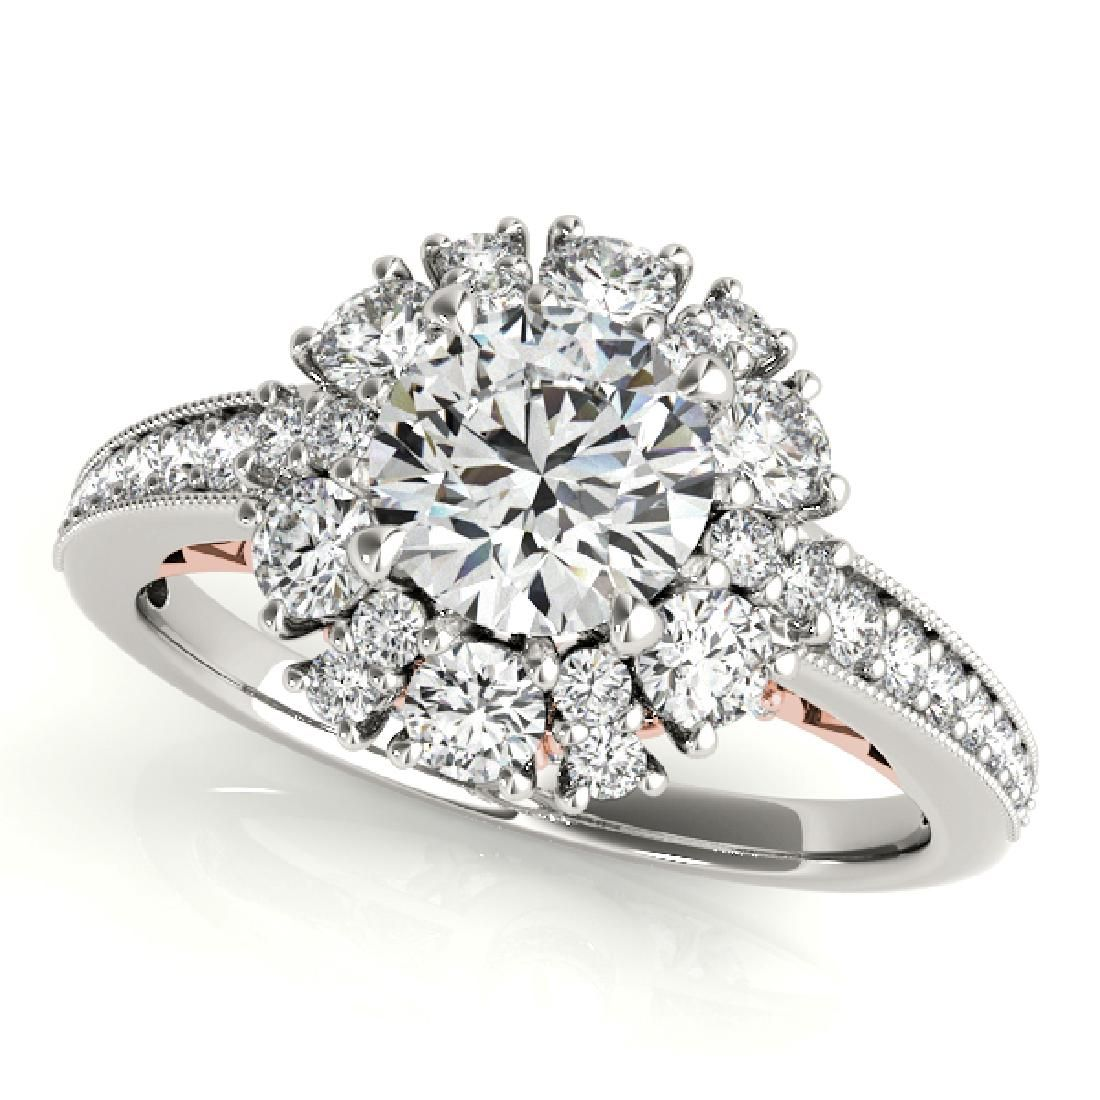 CERTIFIED TWO TONE GOLD 1.41 CT G-H/VS-SI1 DIAMOND HALO